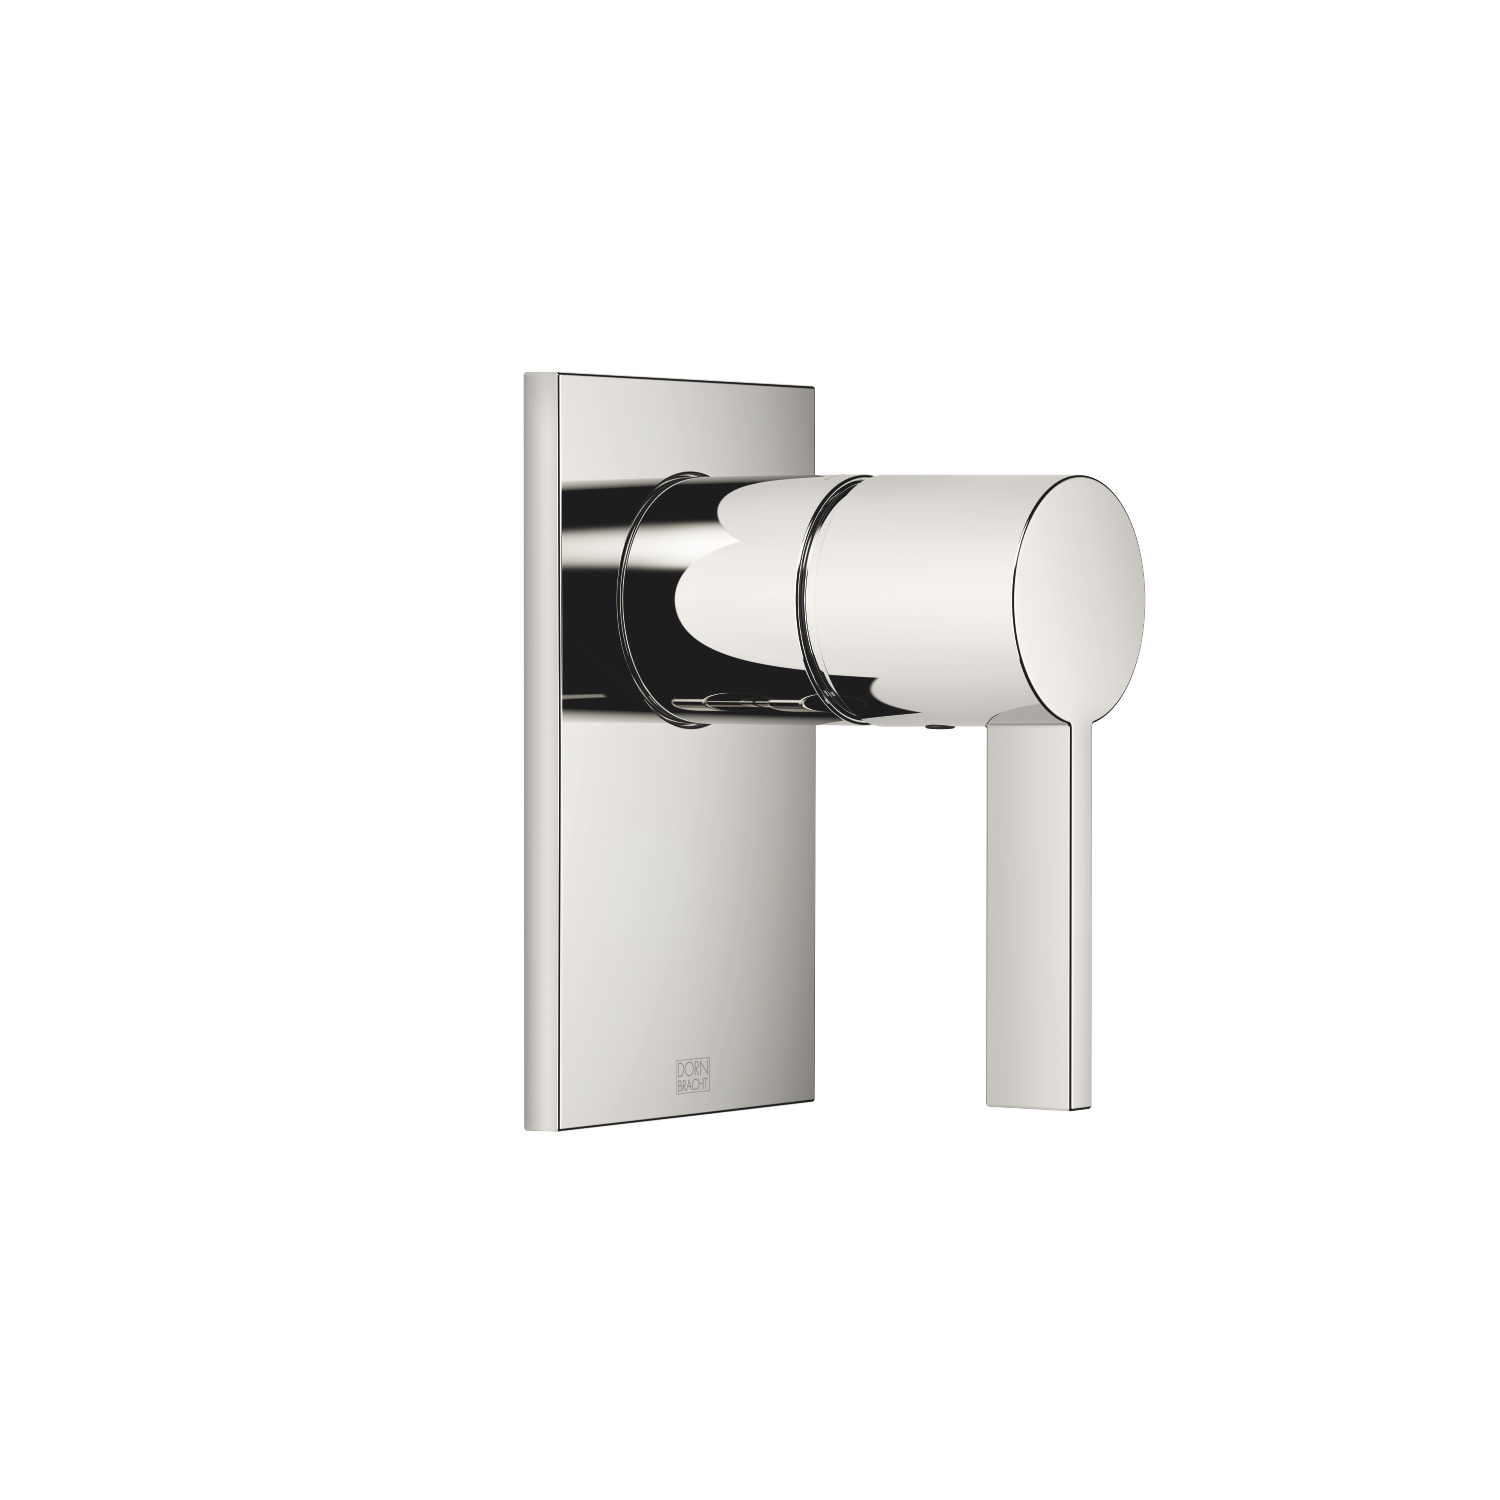 Concealed single-lever mixer without diverter - platinum